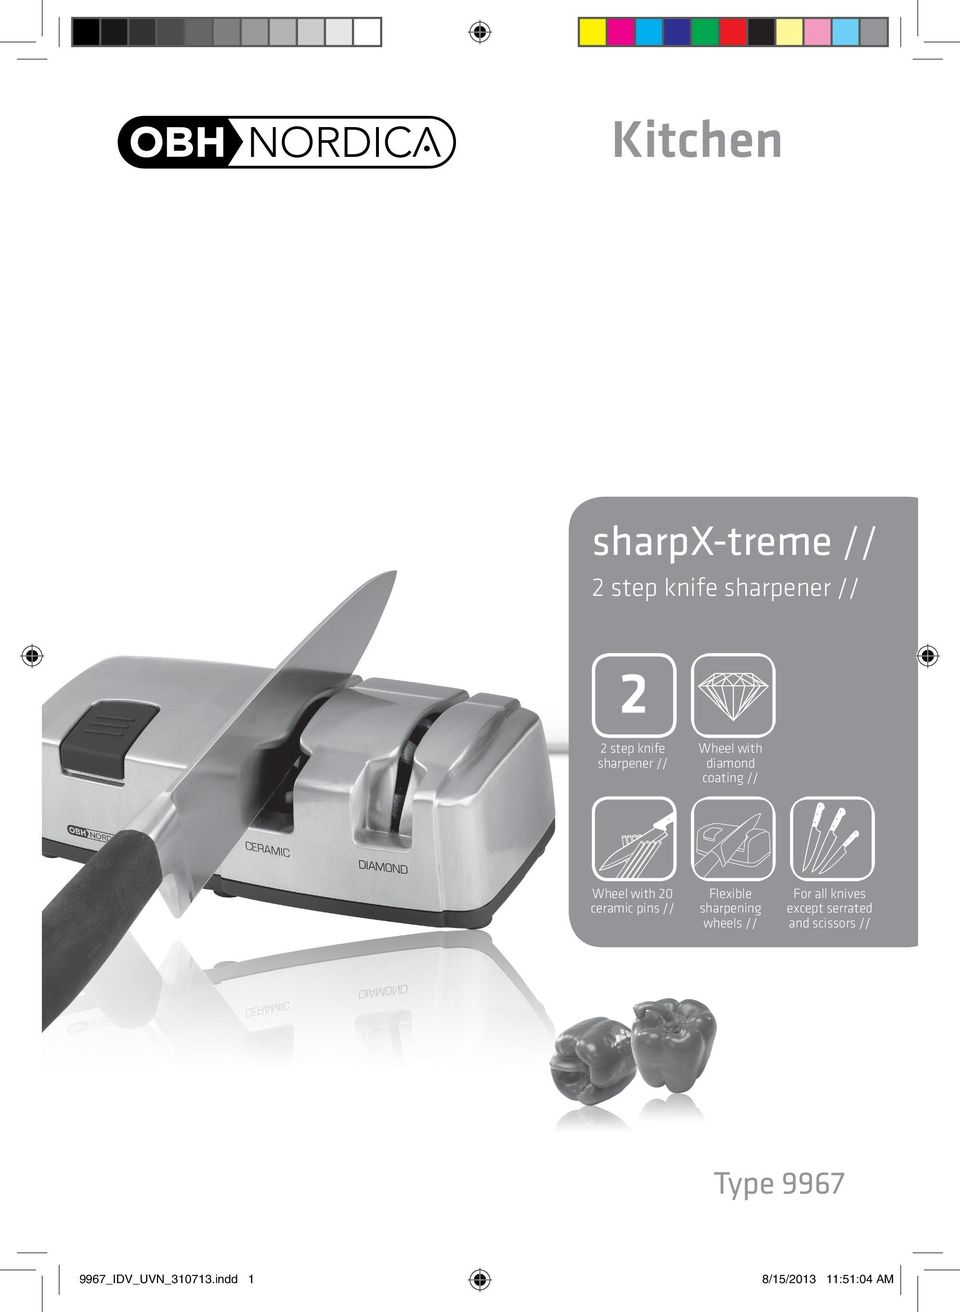 pins // Flexible sharpening wheels // For all knives except